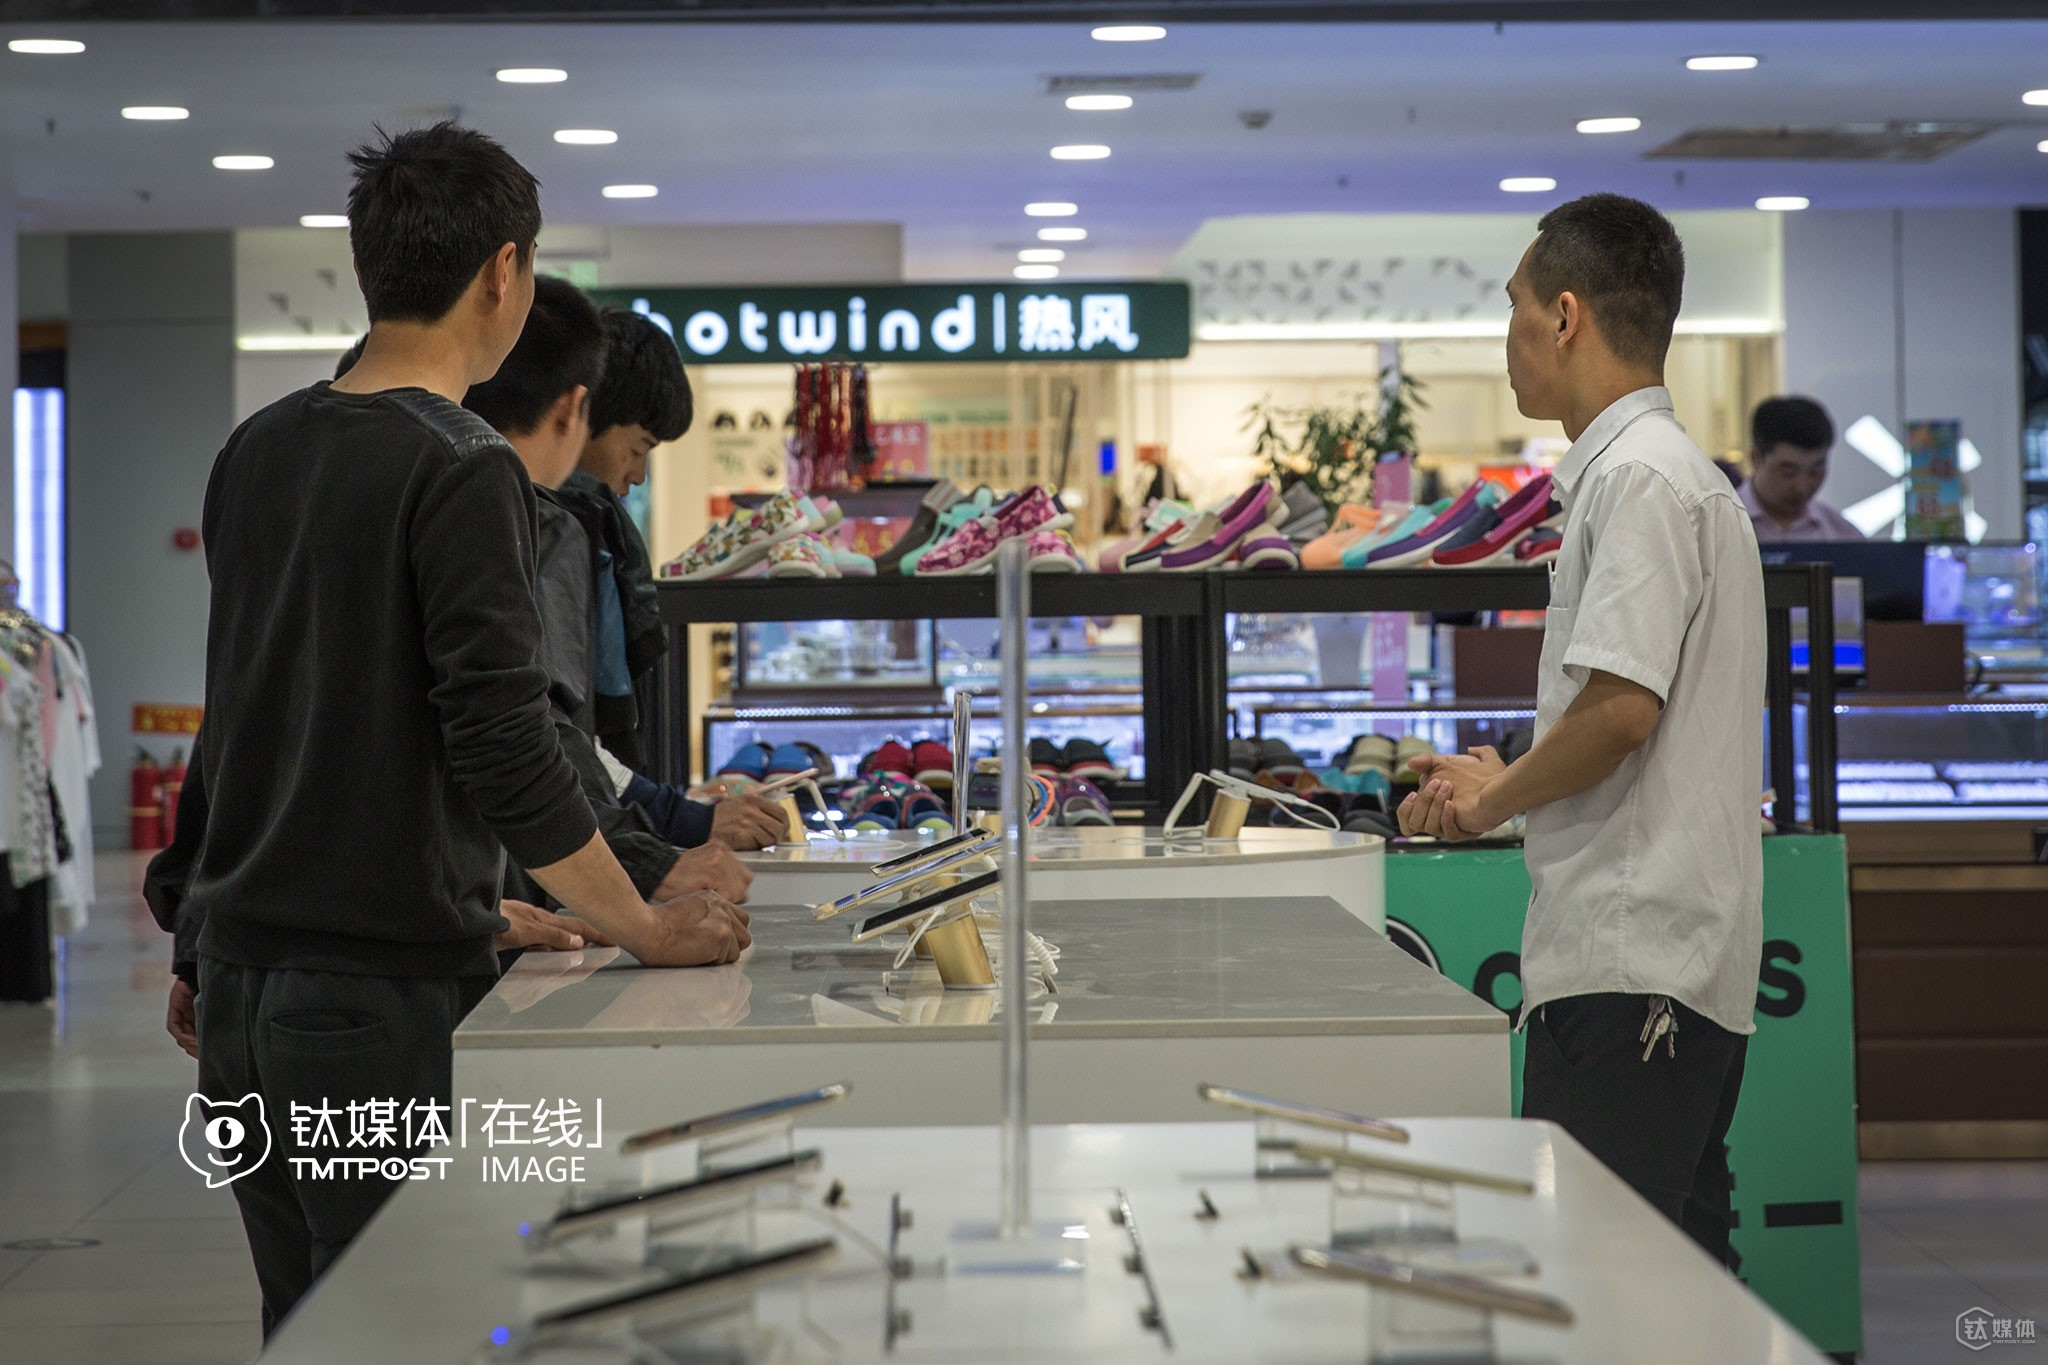 The smartphone store, covering over 65 square meters, was inside Guotai Mall. It was April, 9th, around 260 customers went into the store, among them 8 customers bought new smartphones, 2 replaced their screens, and 3 signed up for contract numbers. To be more specific, 5 of them bought an iPhone, 2 bought Huawei, and 1 bought vivo. By the way, 4 of them bought their new smartphone on installment (3 for iPhone and 1 for Huawei).  There are 49 types of smartphone models on display in this tiny smartphone store, and the brand ranges from Apple, Huawei, Samsung to OPPO, VIVO and Xiaomi, etc.